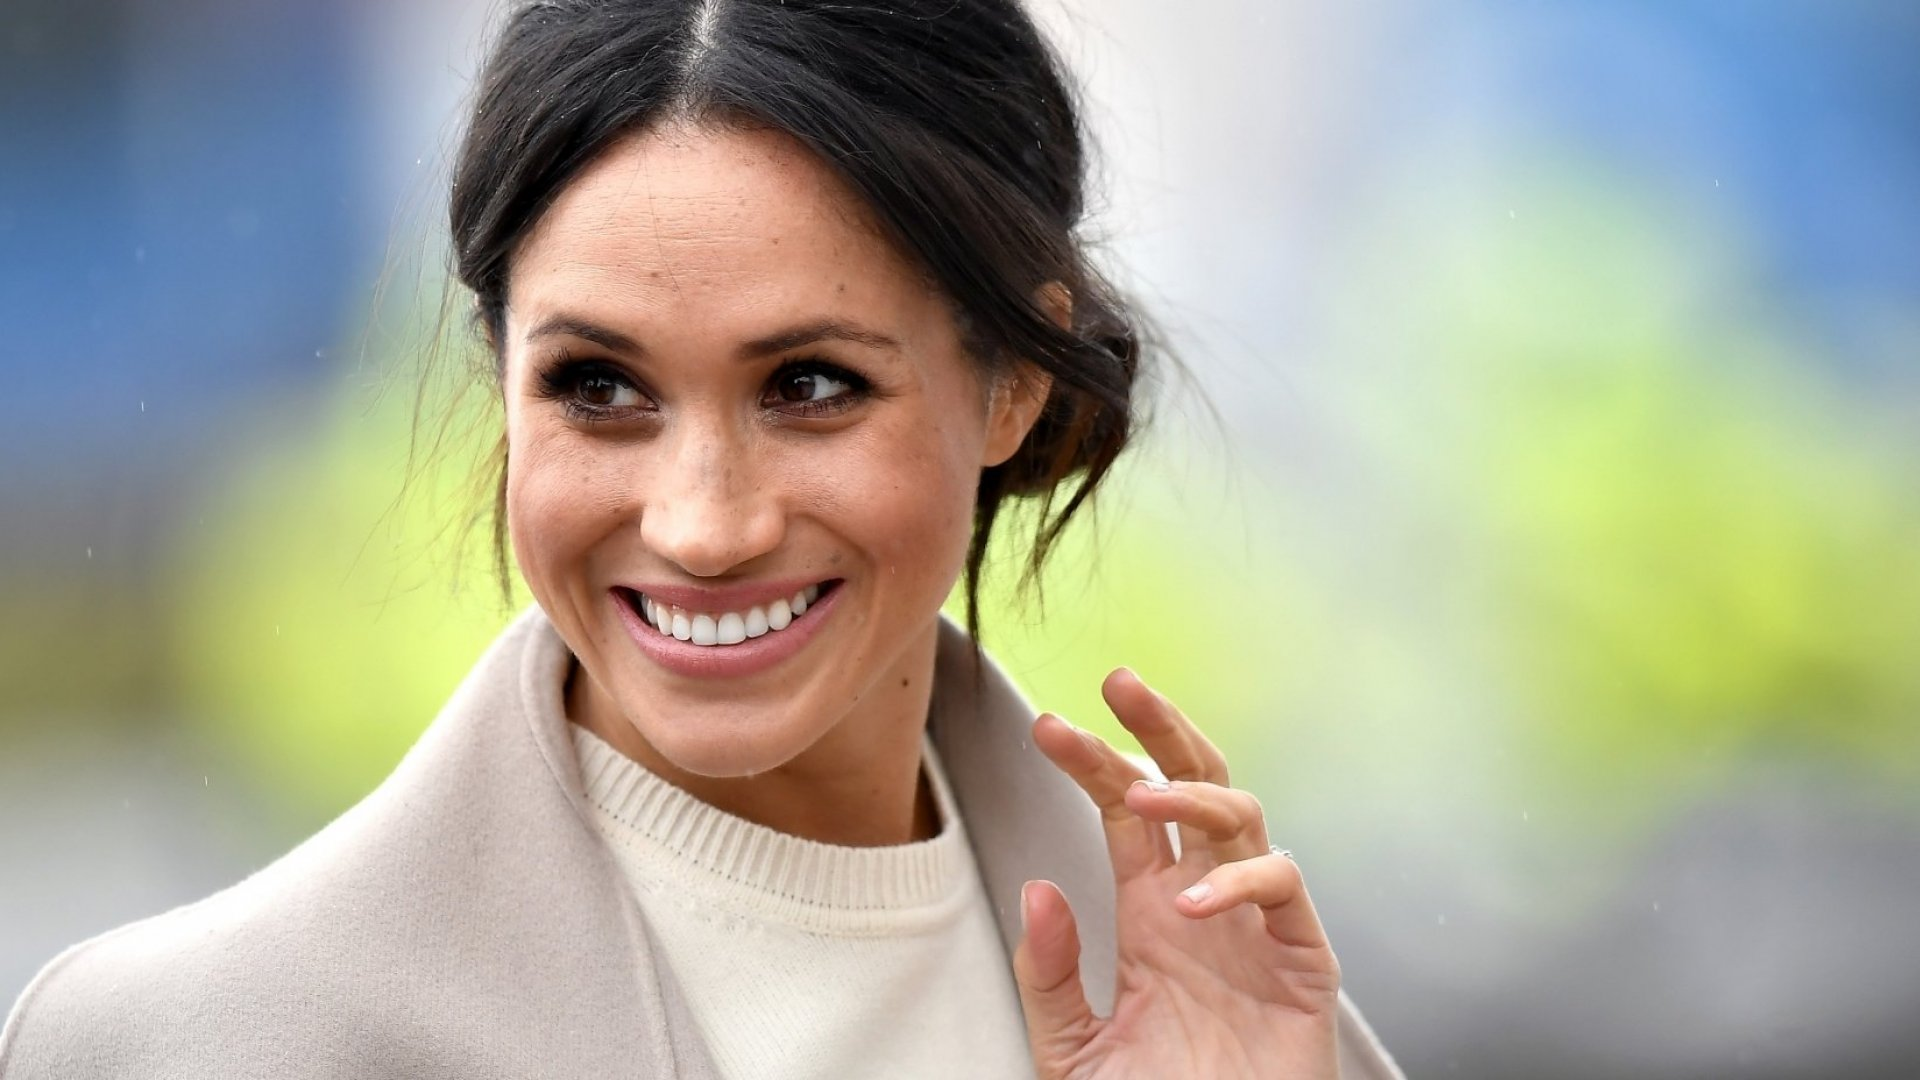 Meghan Markle Gave Up These 6 Things to Become a Princess. Would You?